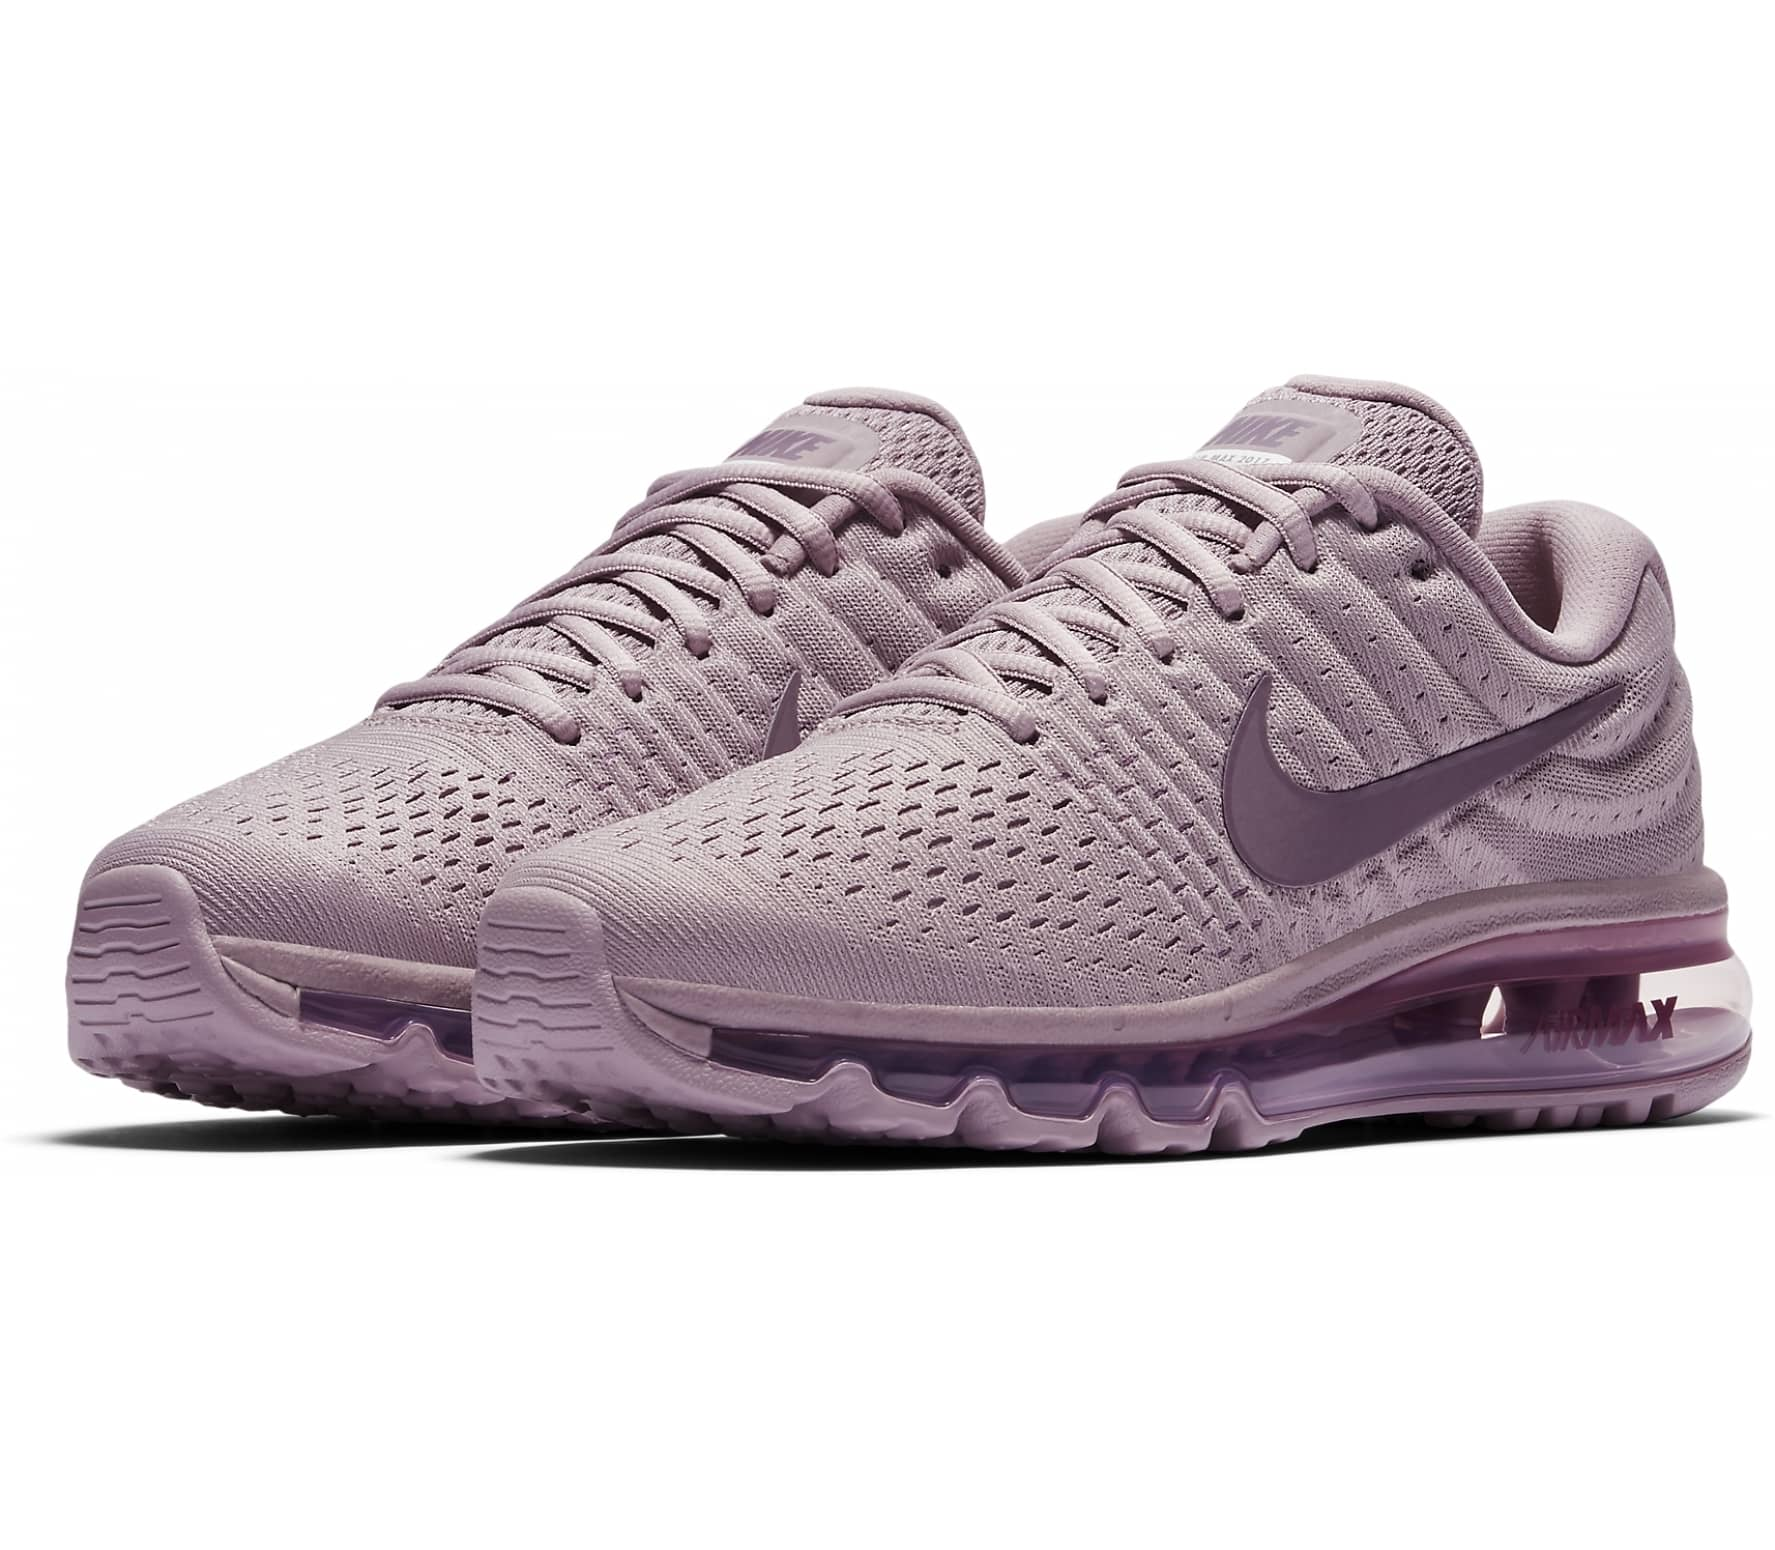 ad4d19dd53f Nike - Air Max 2017 women s running shoes (purple) - buy it at the ...